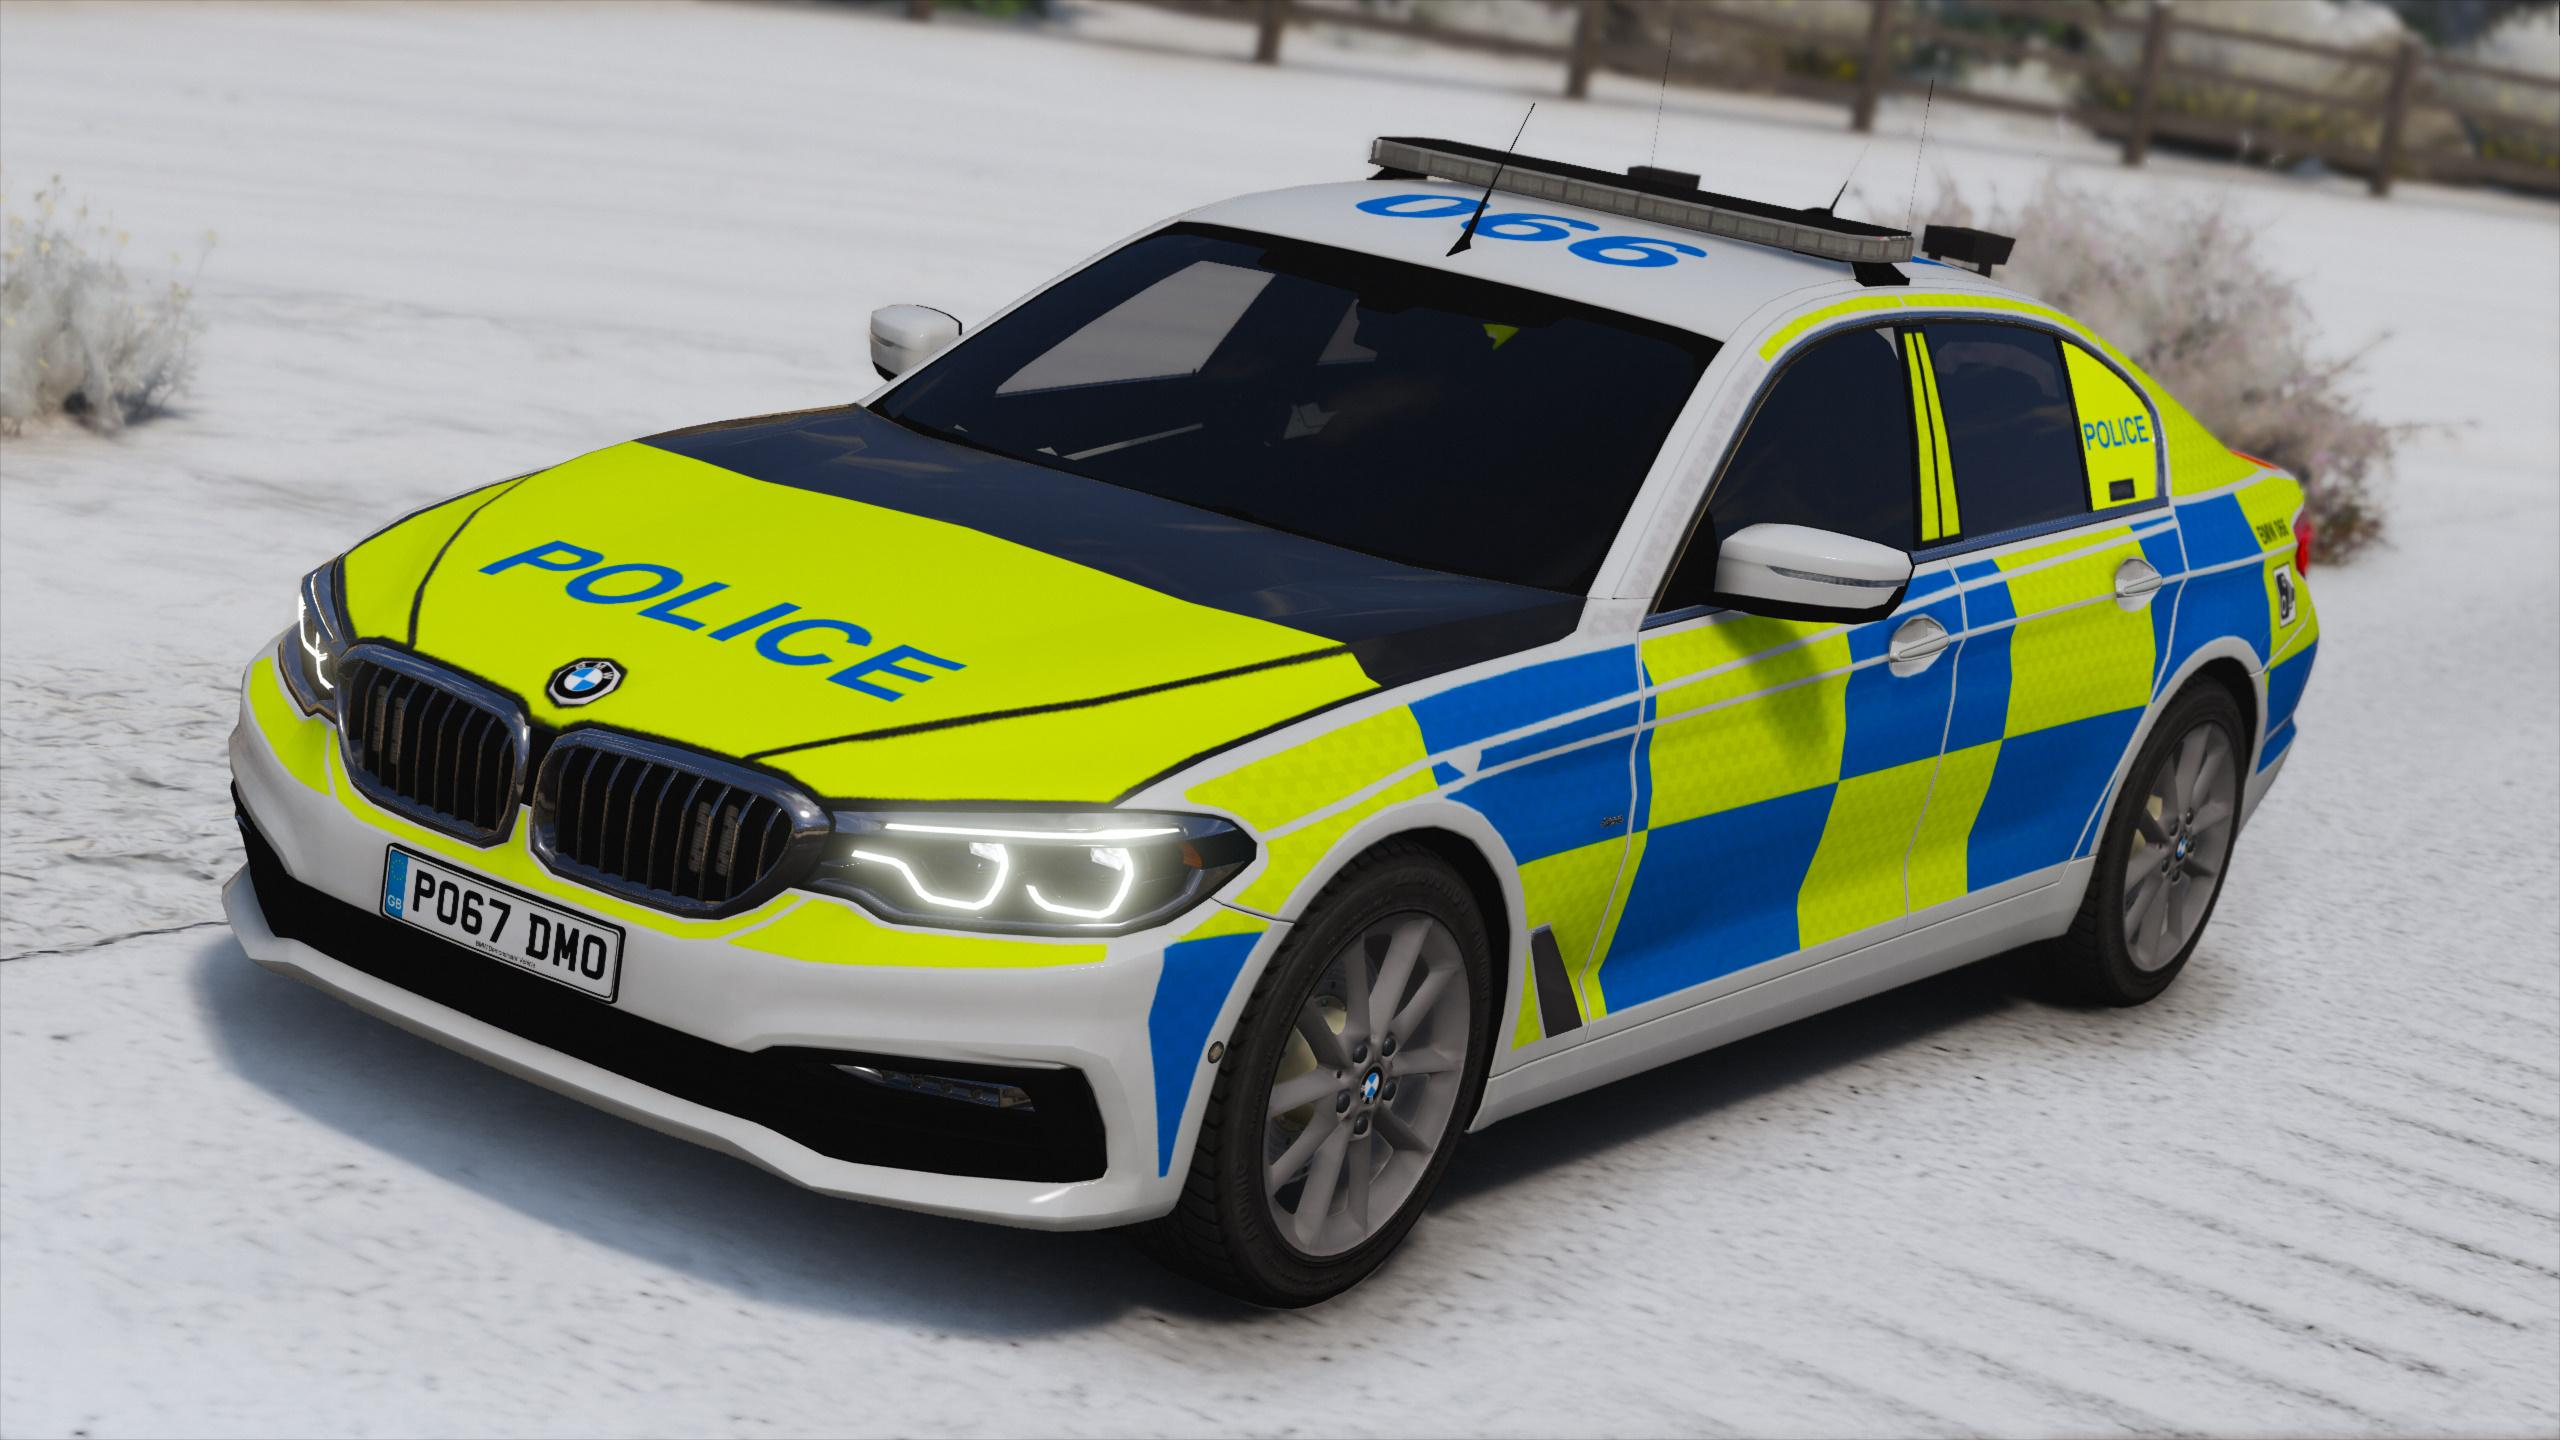 2017 Police BMW G30 5-Series [Replace | ELS]